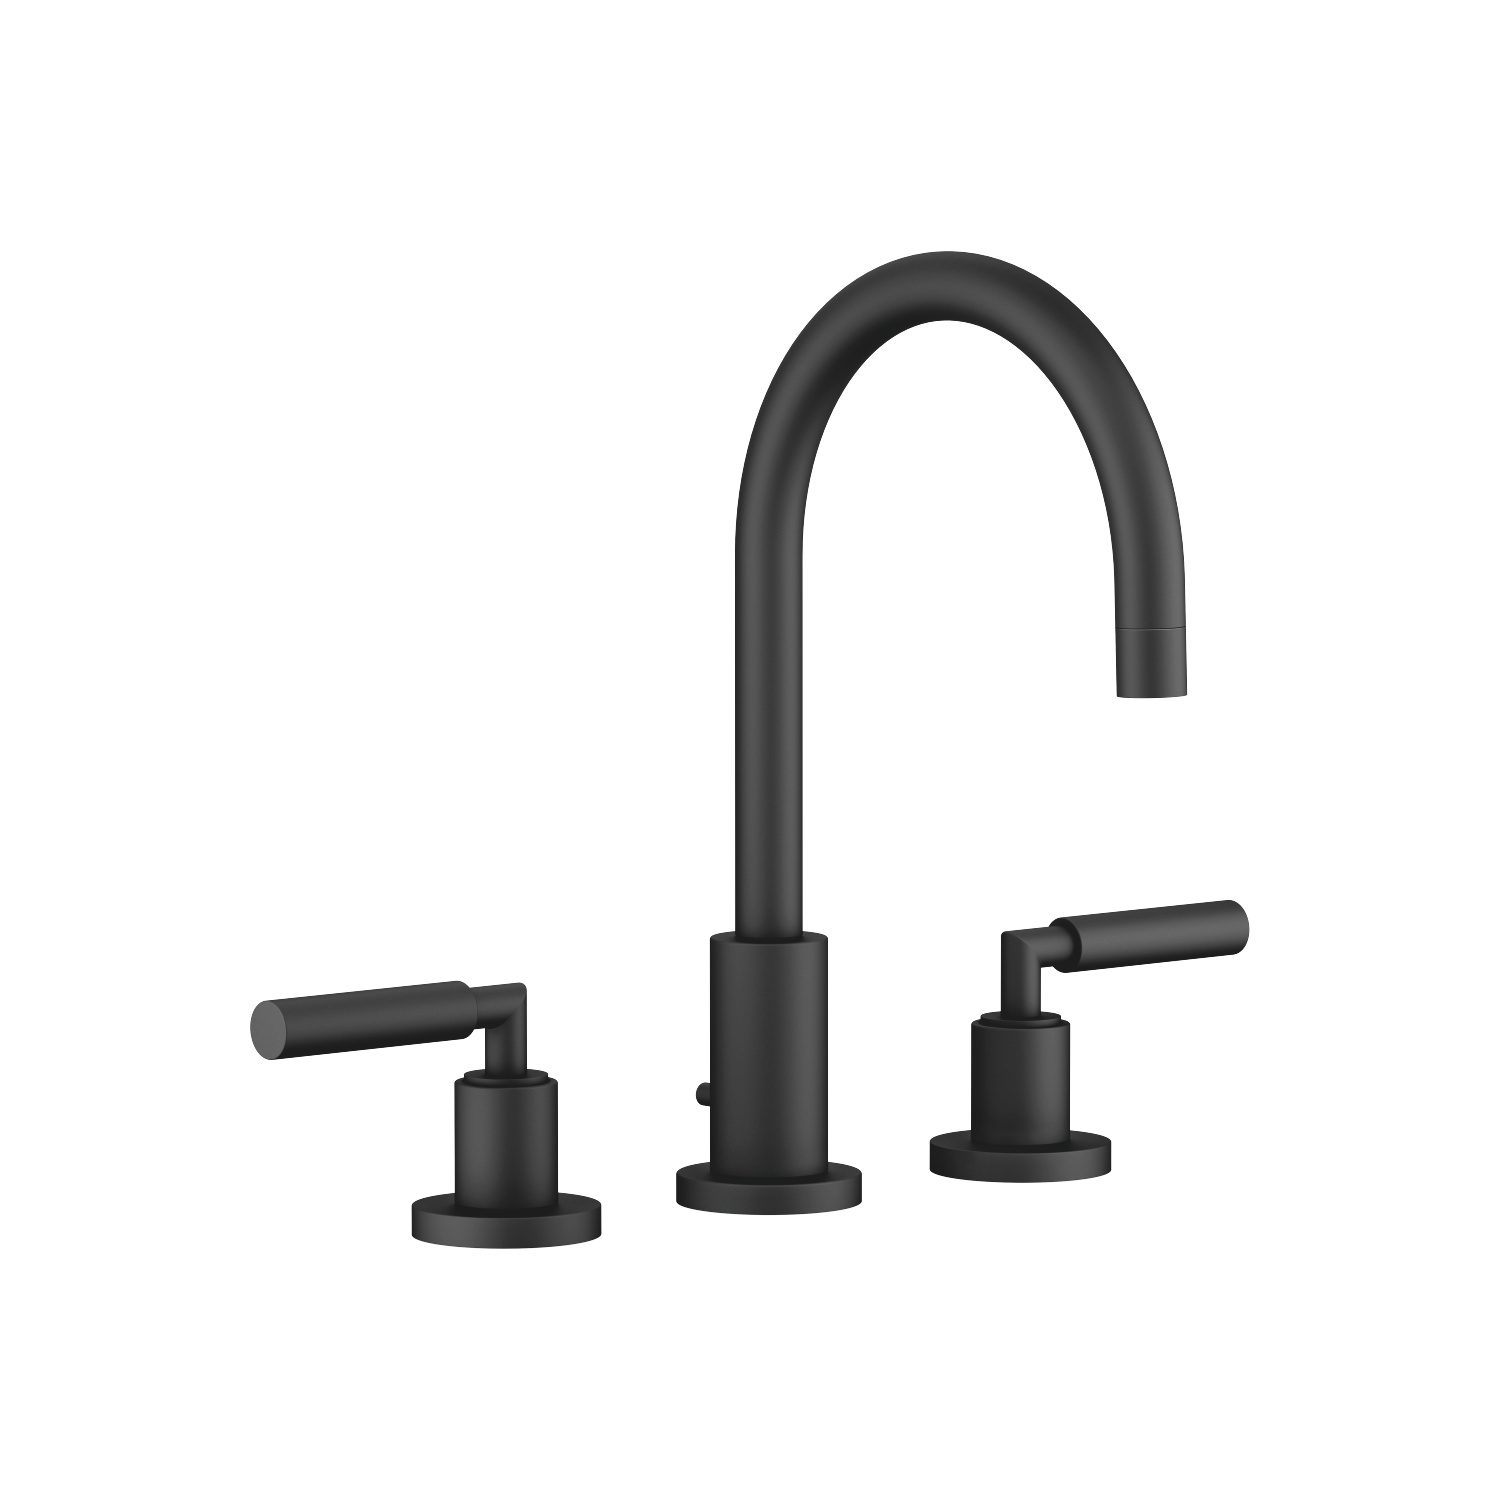 Three-hole basin mixer with pop-up waste - matt black